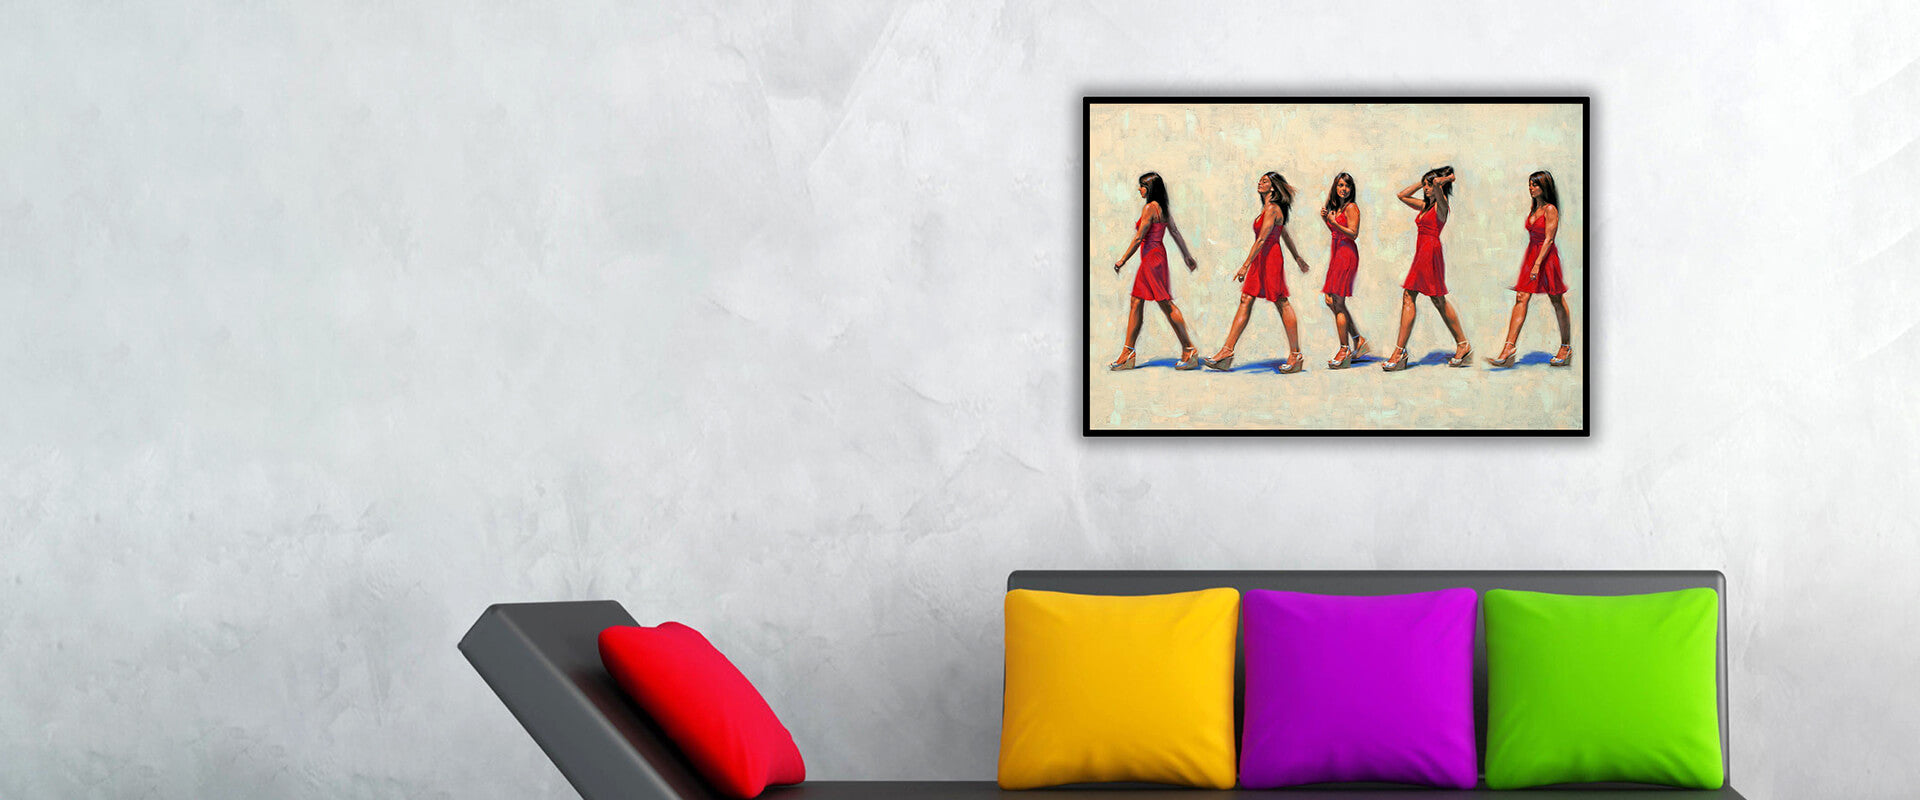 Posters | Buy Posters, Frames, Canvas, Digital Art & Large Size Prints